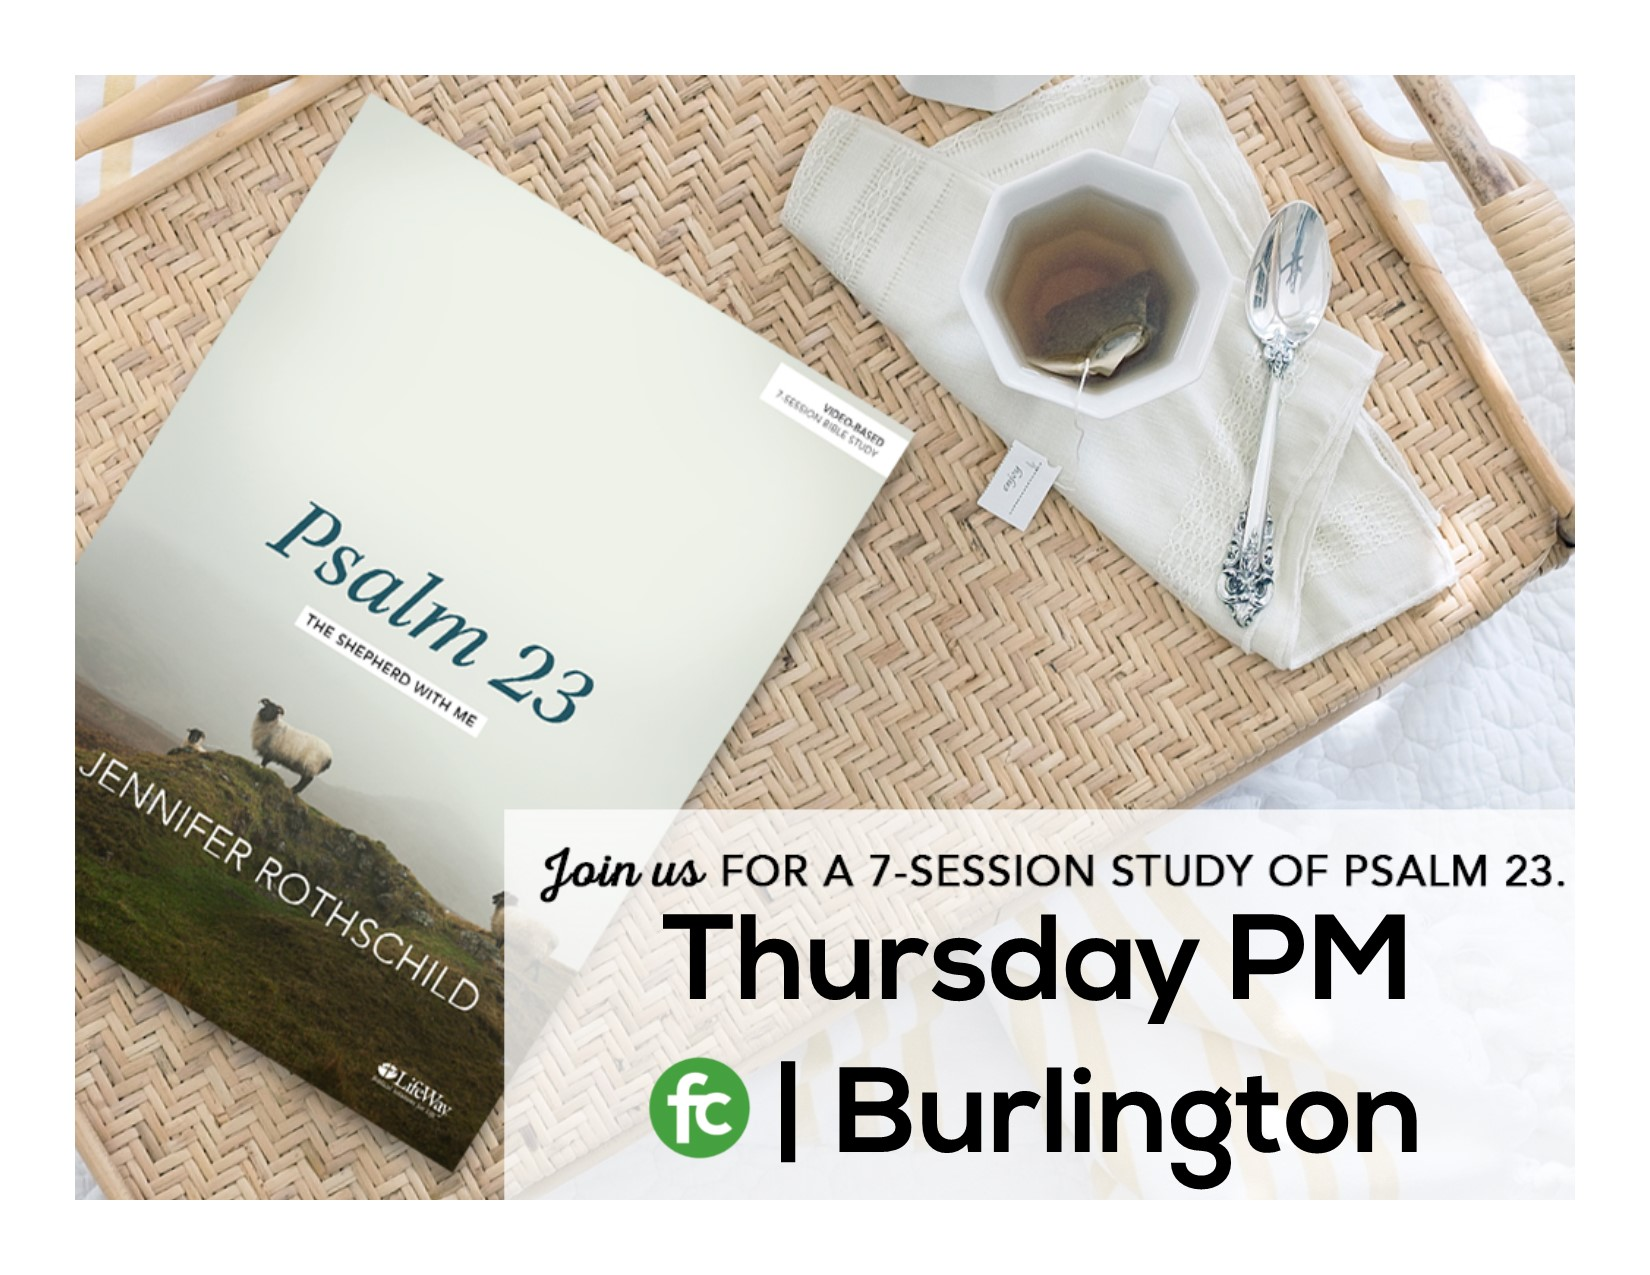 Thurs burl pm psalm 23 promo